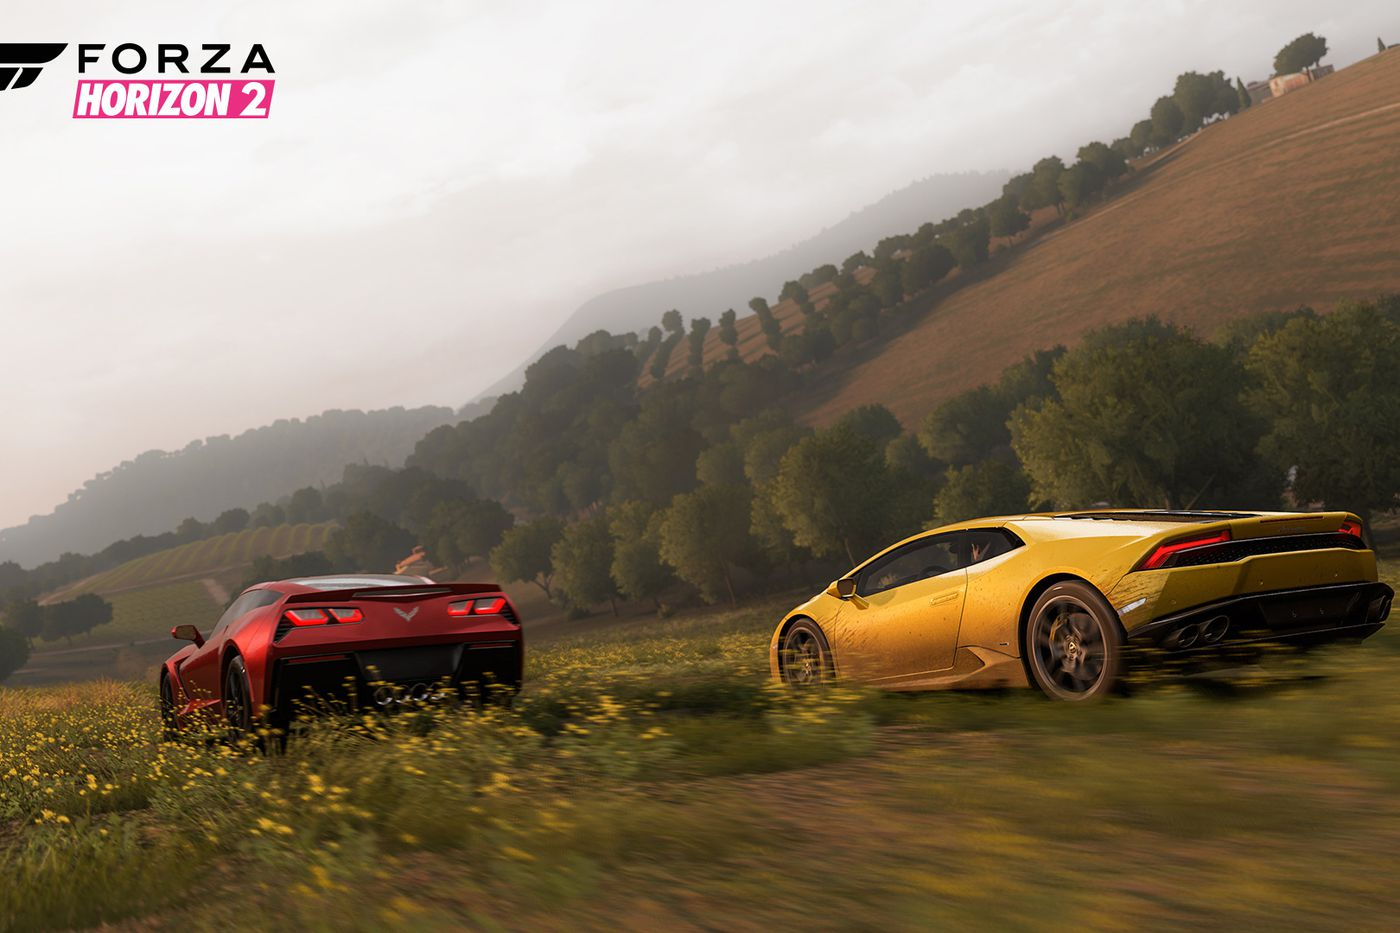 Forza Horizon 2 dev considered southern European setting for